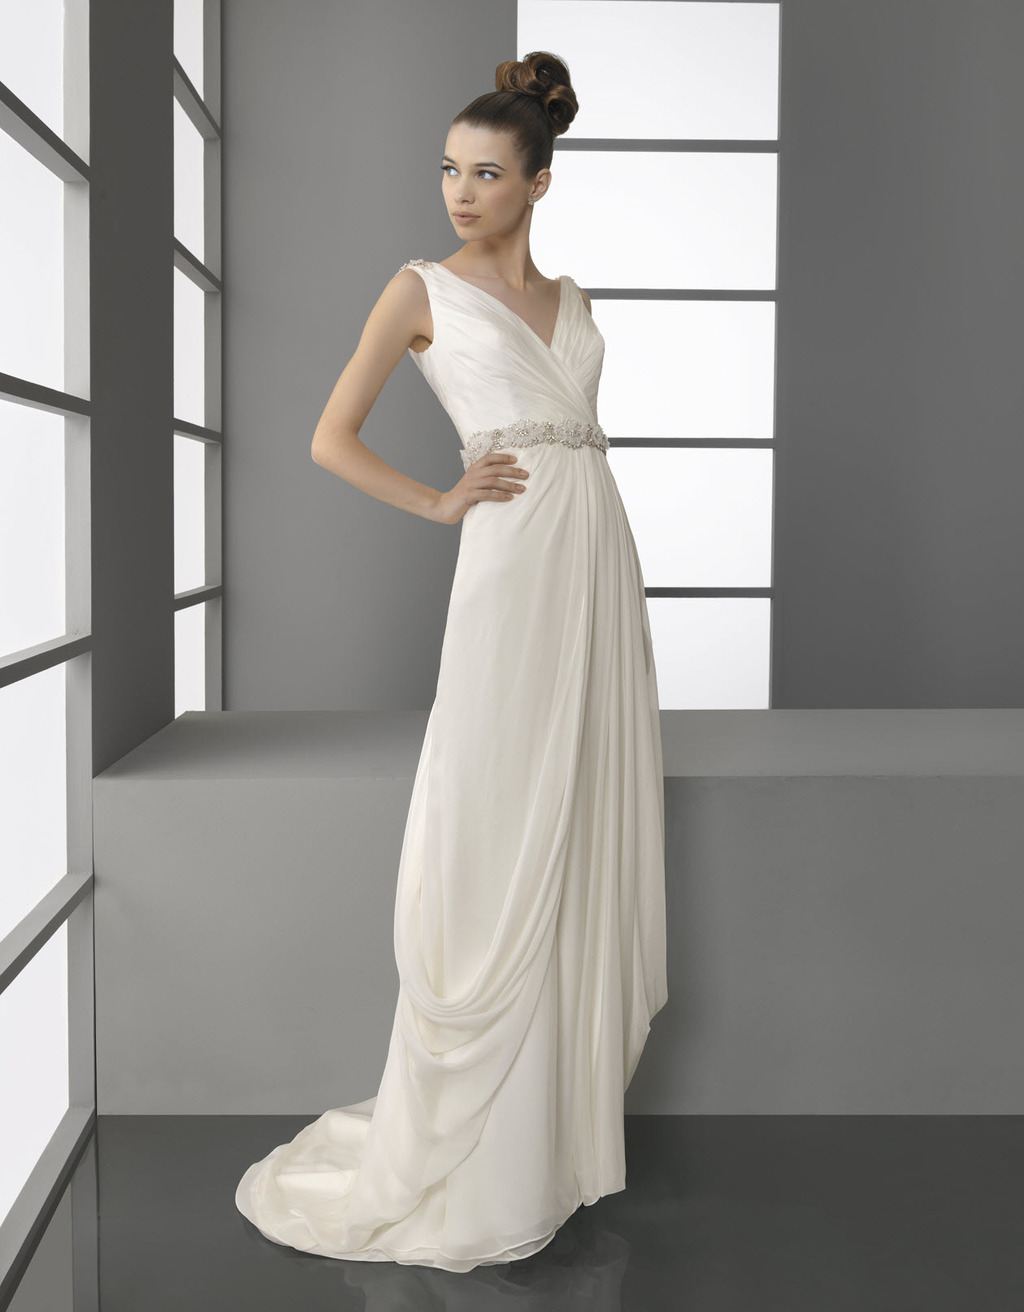 Paseo-modern-wedding-dress-spring-2012-bridal-gowns-aire-barcelona-v-neck-sheath-with-train.full